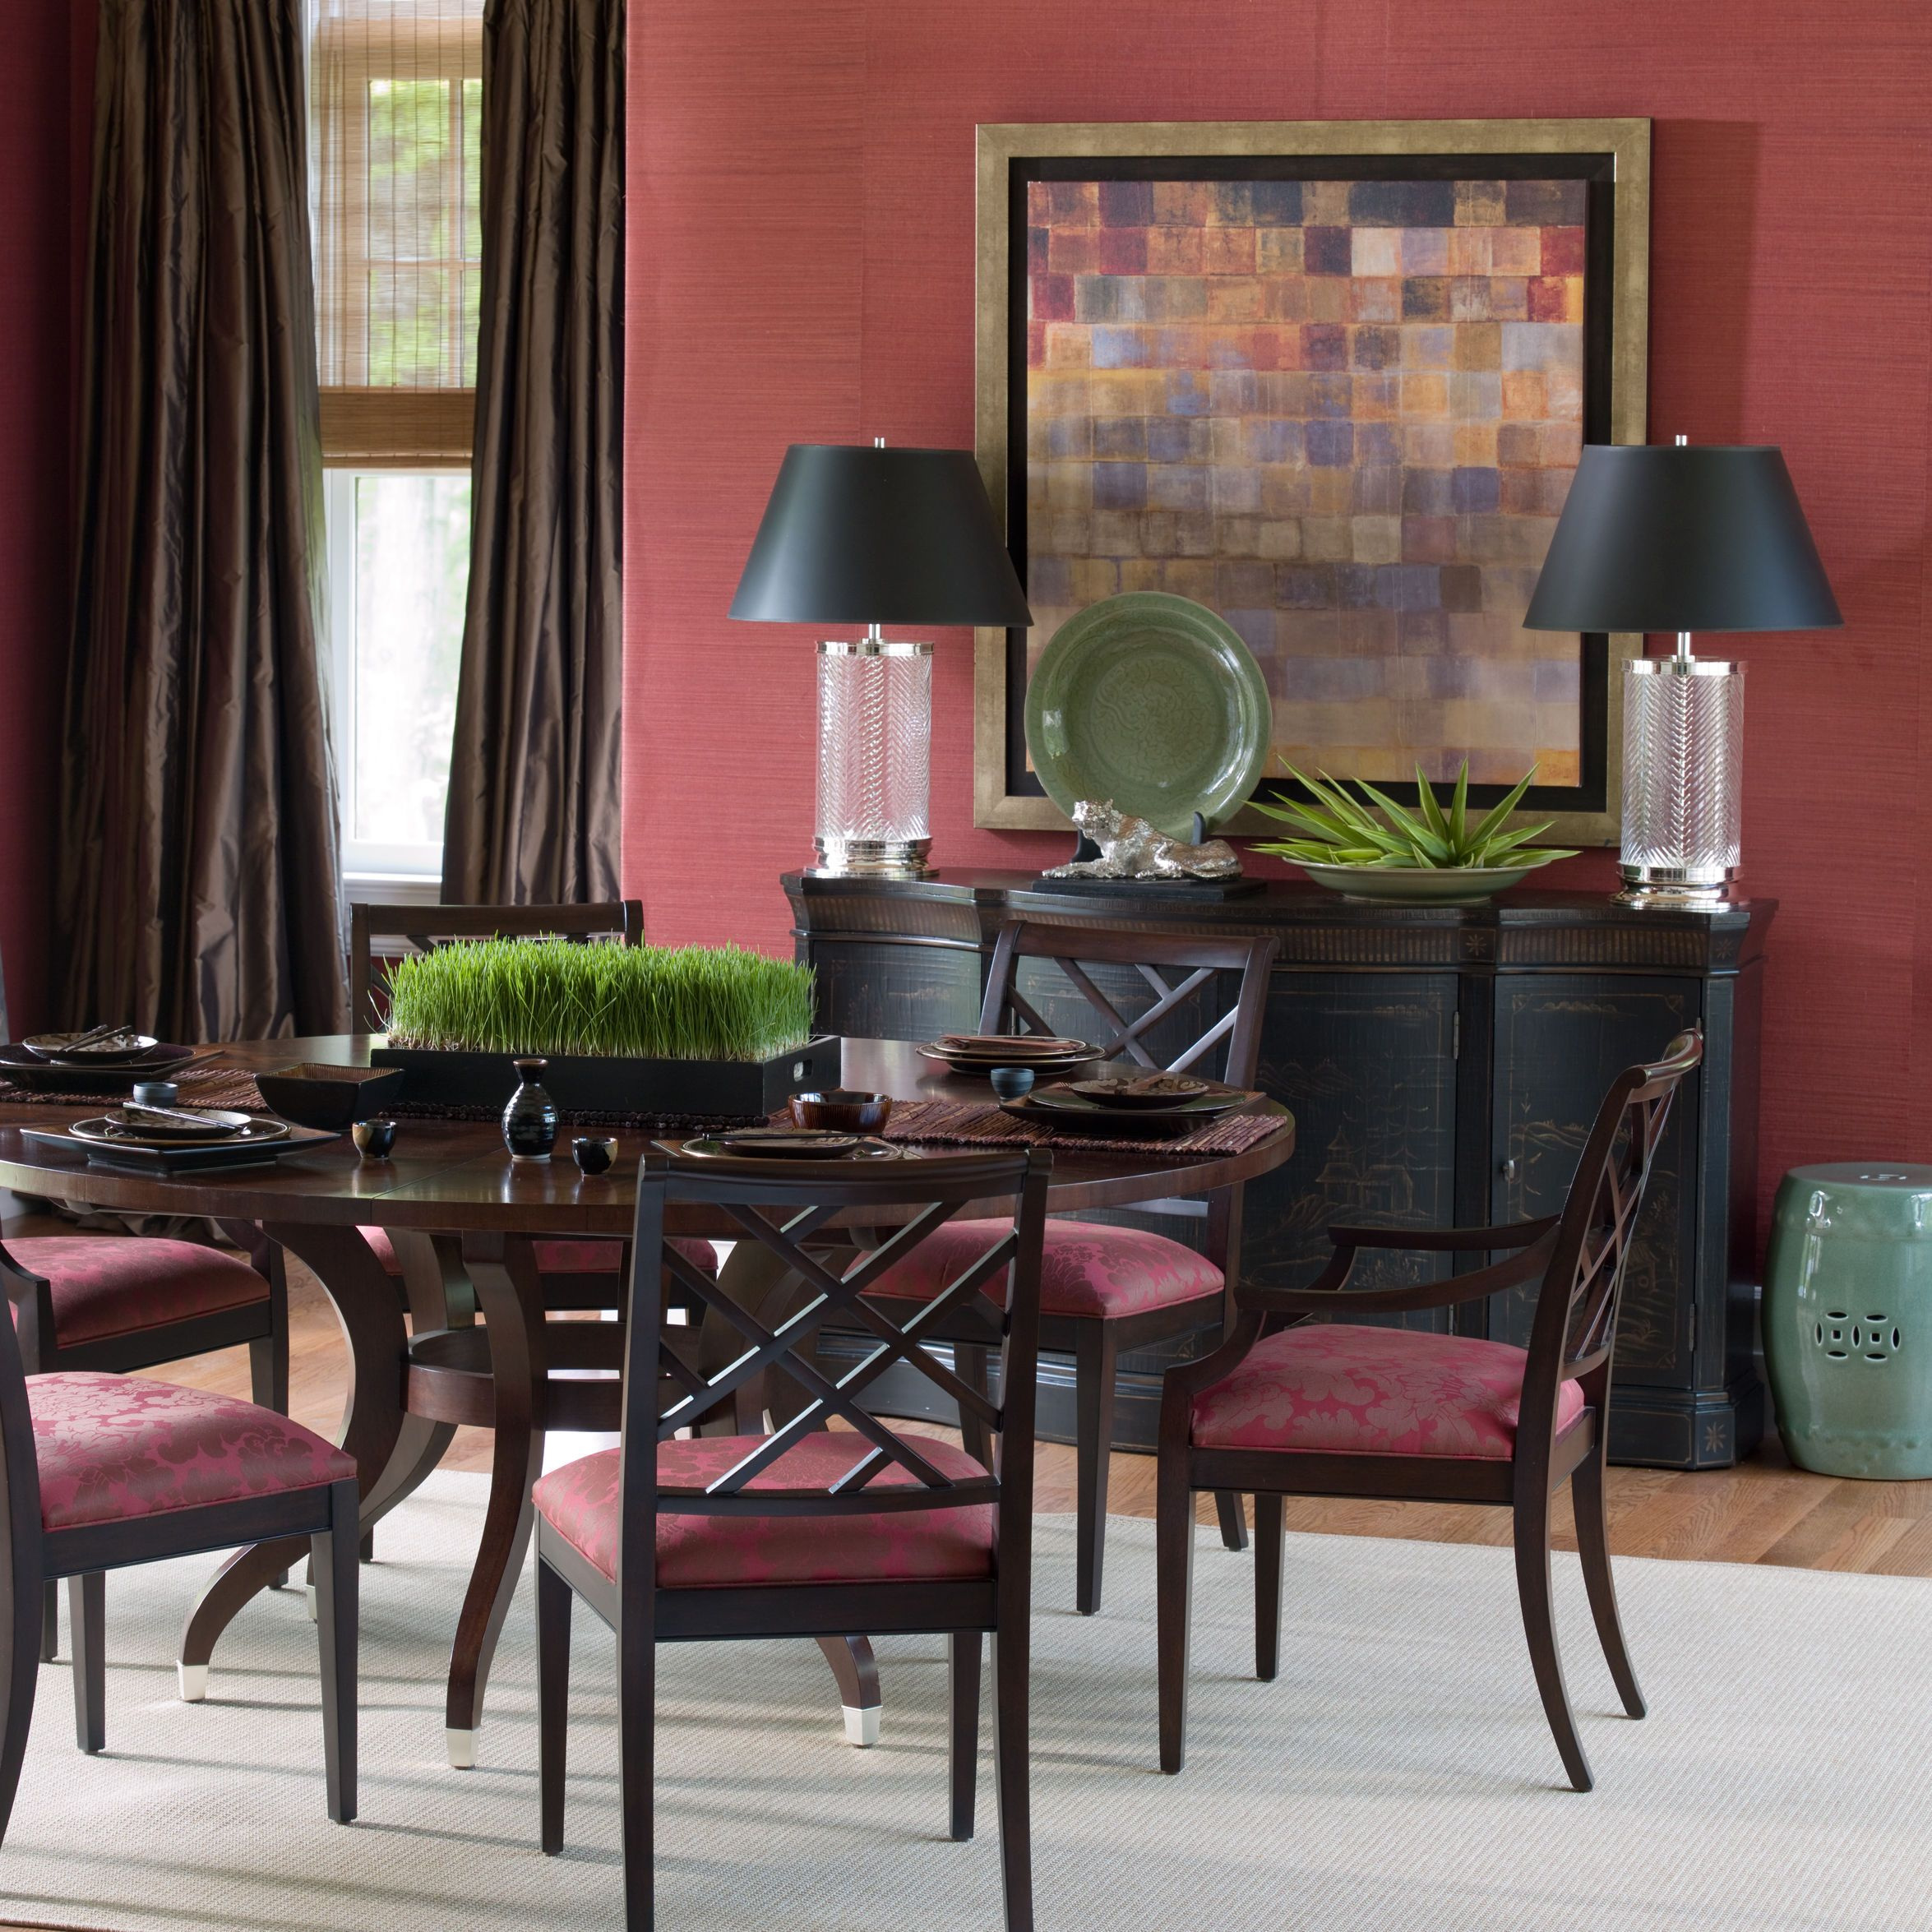 Ethan Allen Dining Room: Ethan Allen Iconics: The Ashcroft Dining Table- Ethan